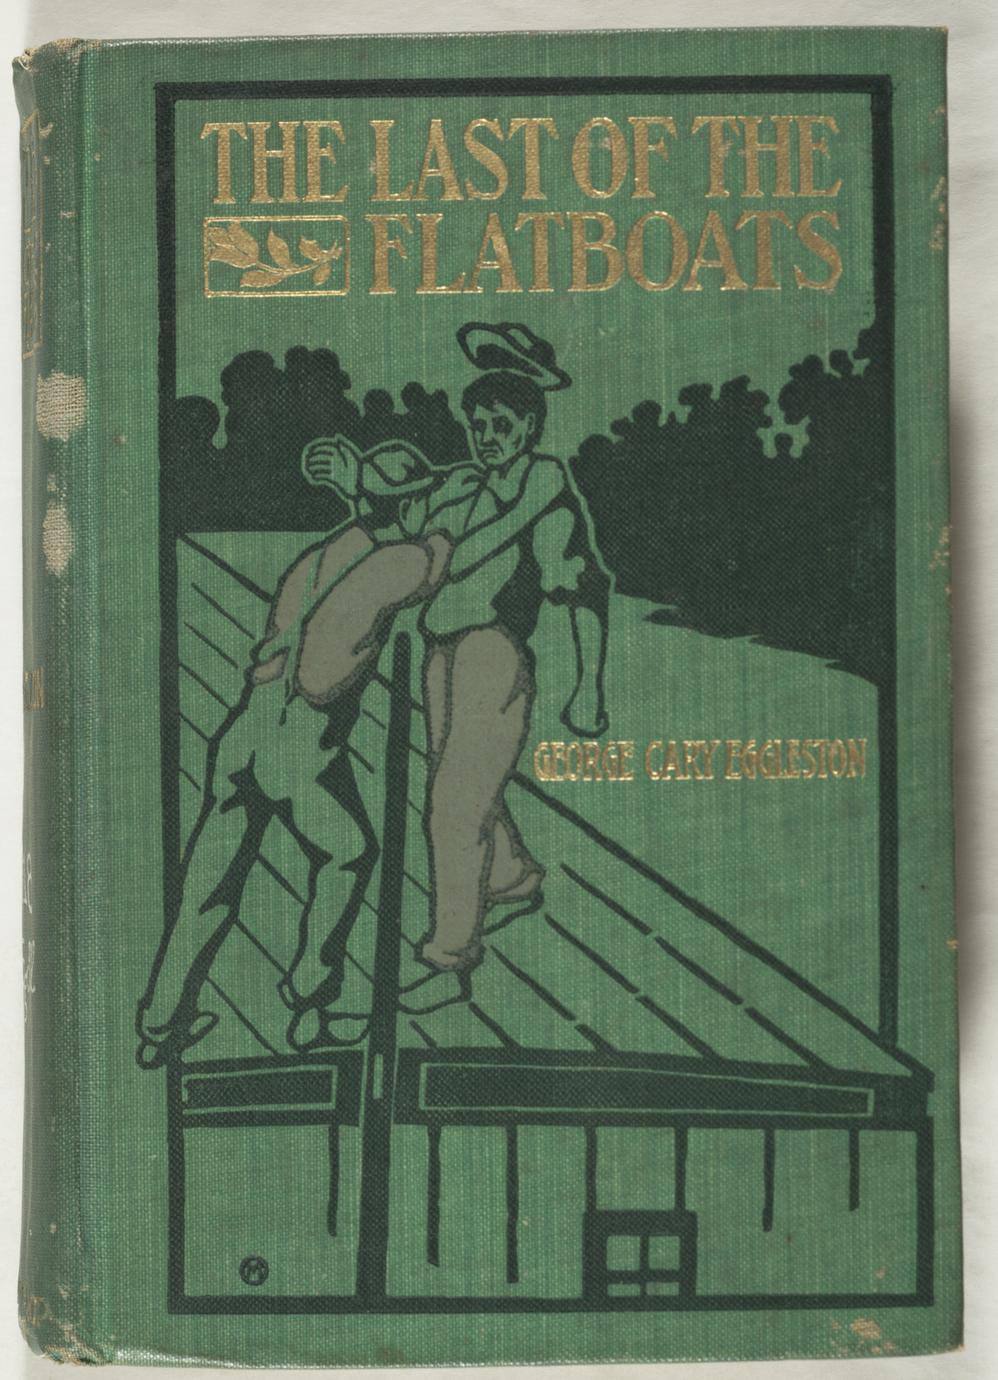 The last of the flatboats : a story of the Mississippi and its interesting family of rivers (1 of 2)